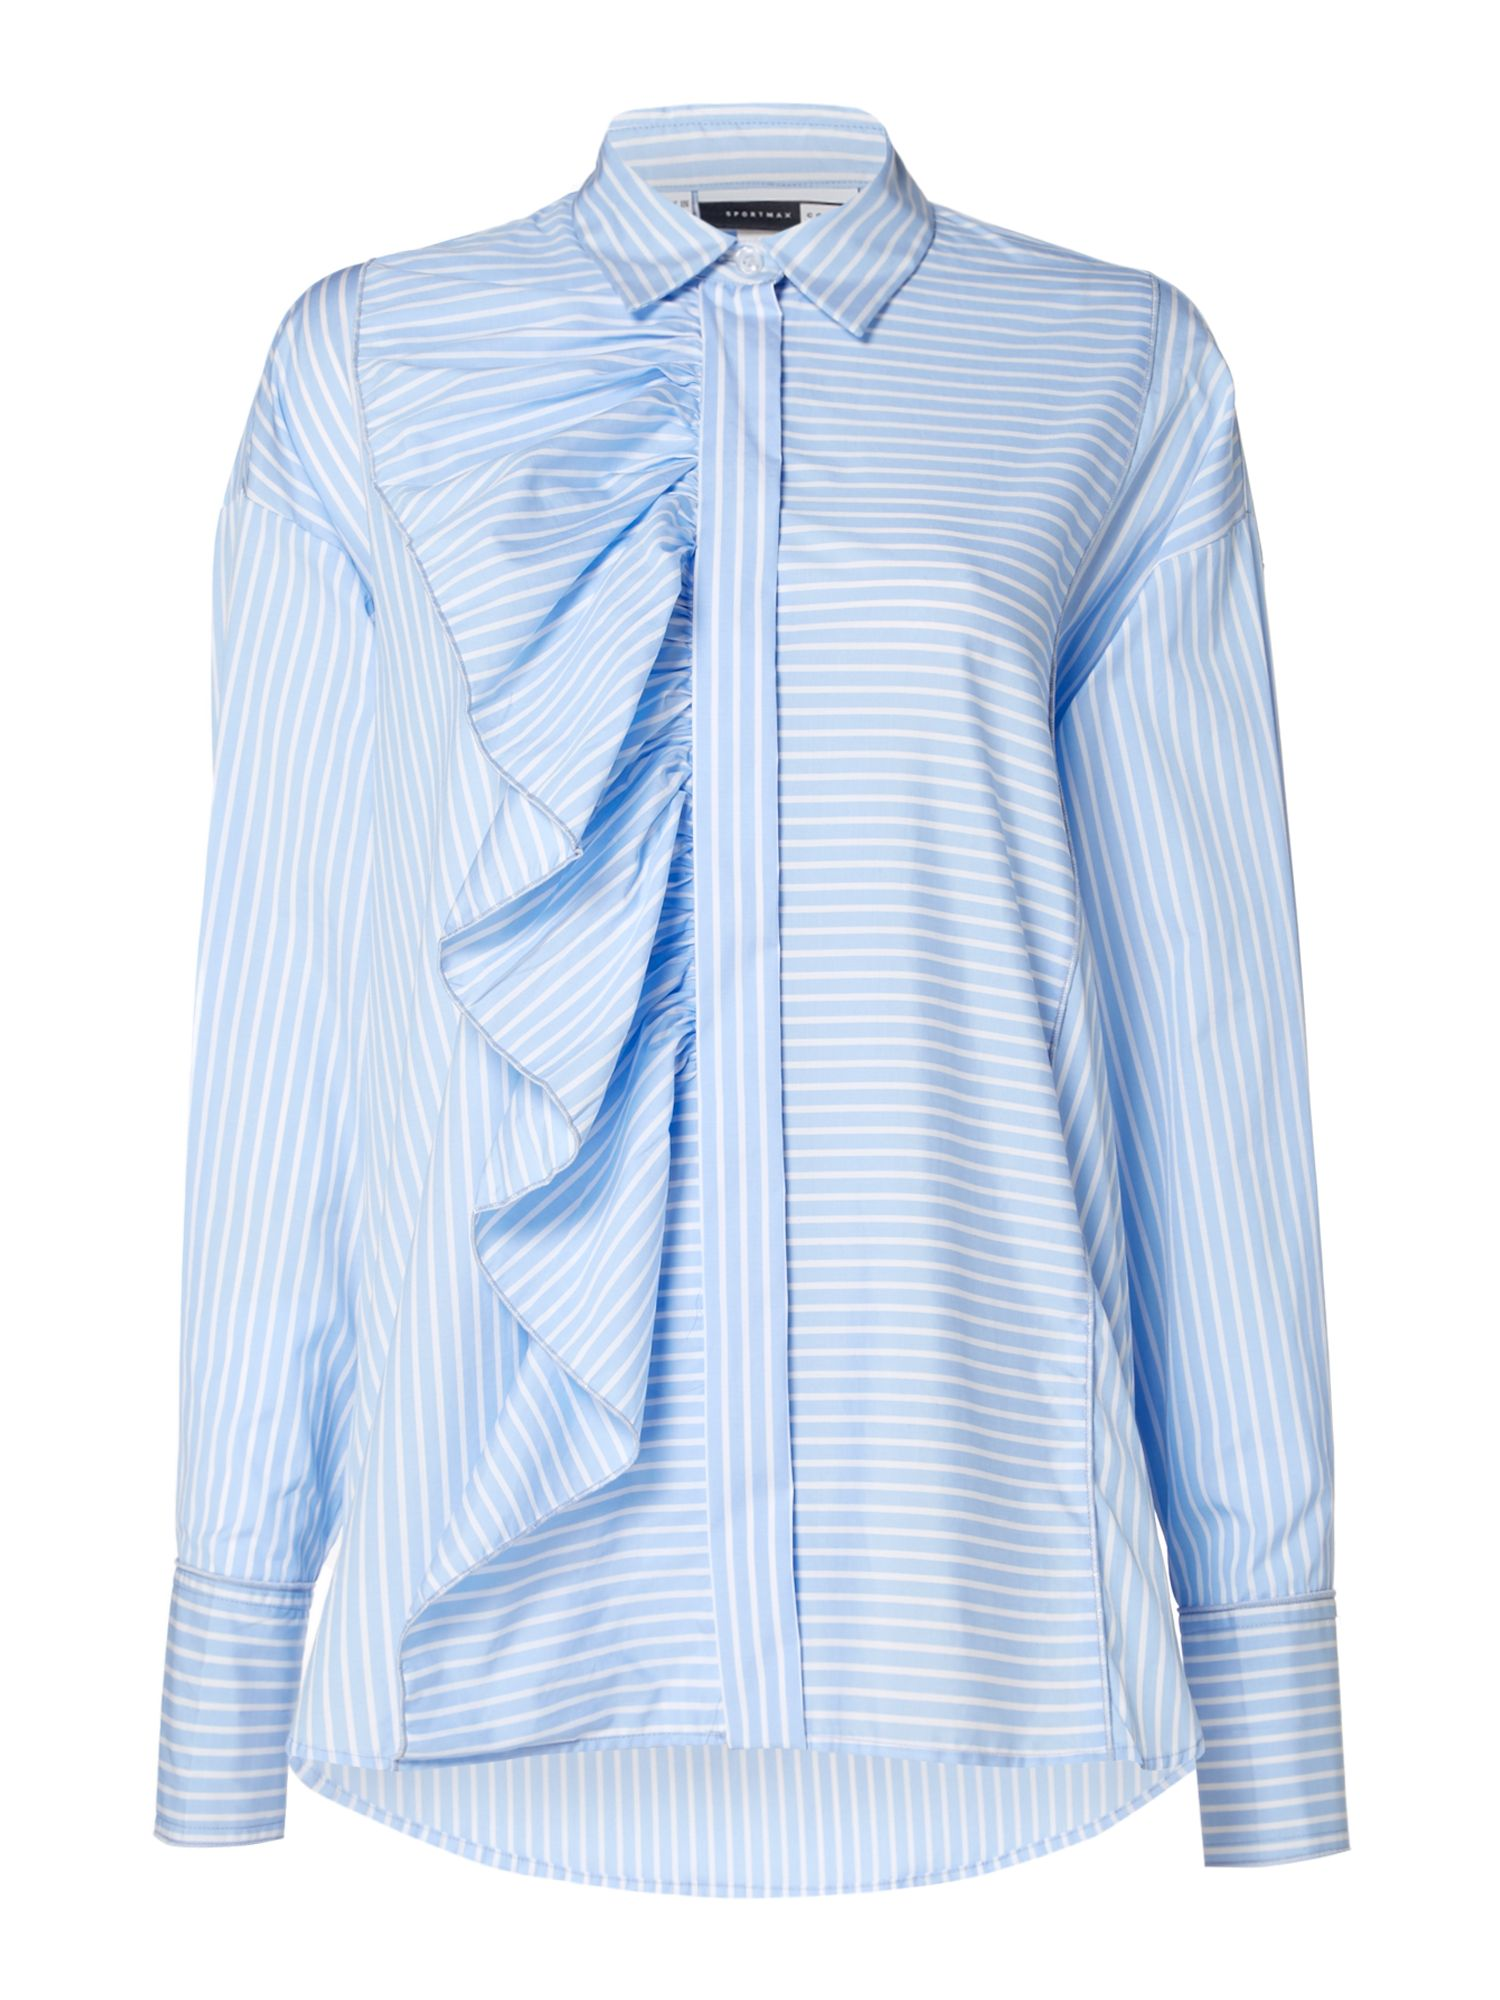 Sportmax Code Longsleeve striped shirt with front frill detail, Light Blue